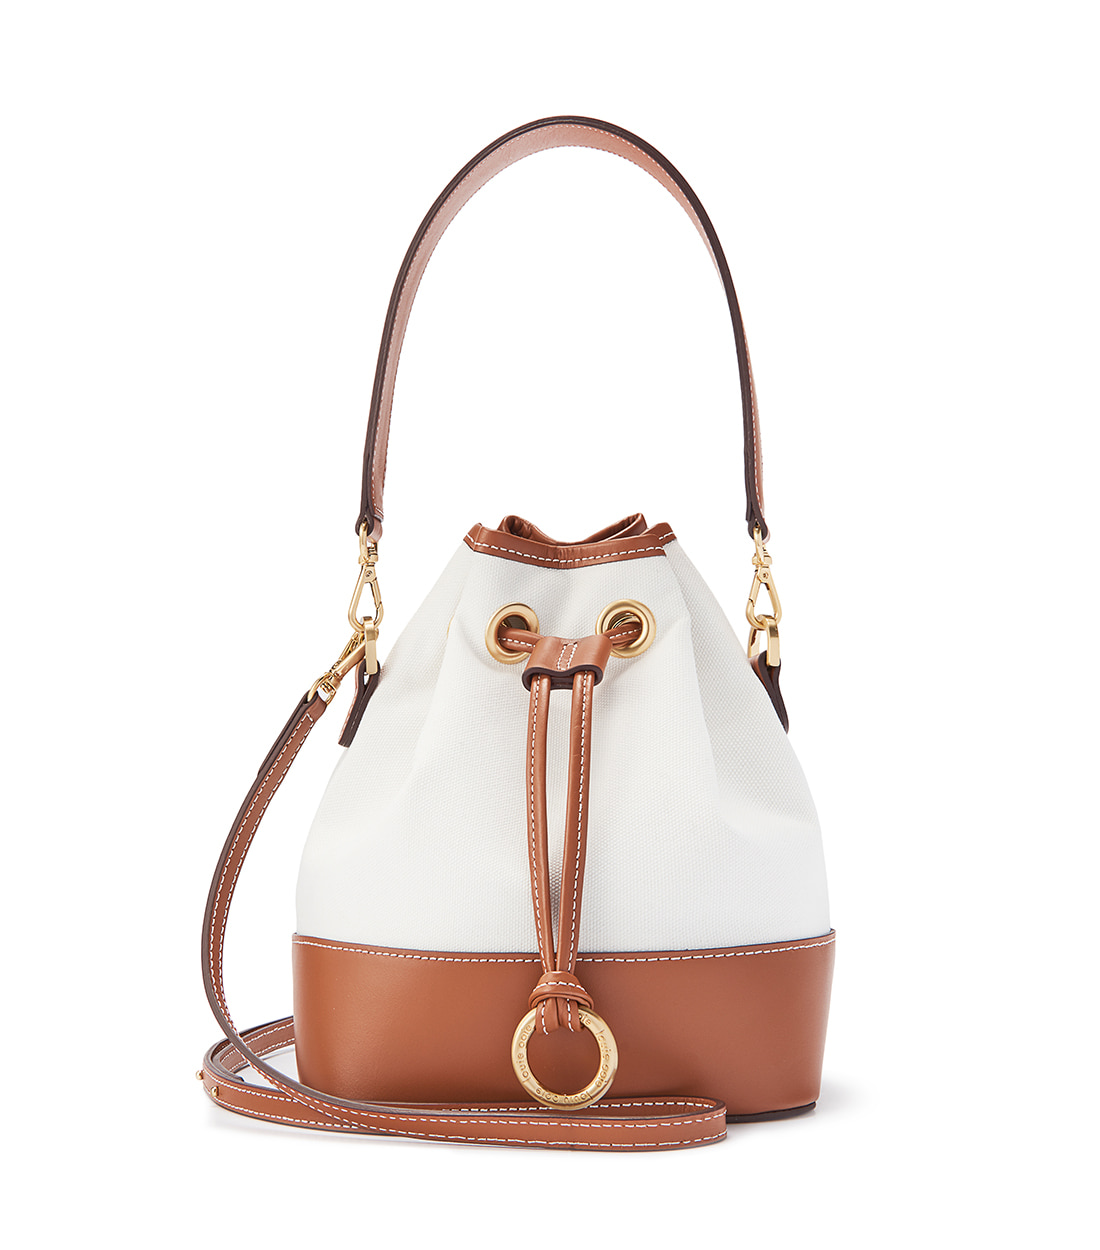 jane bag - camel [refurb 50%]